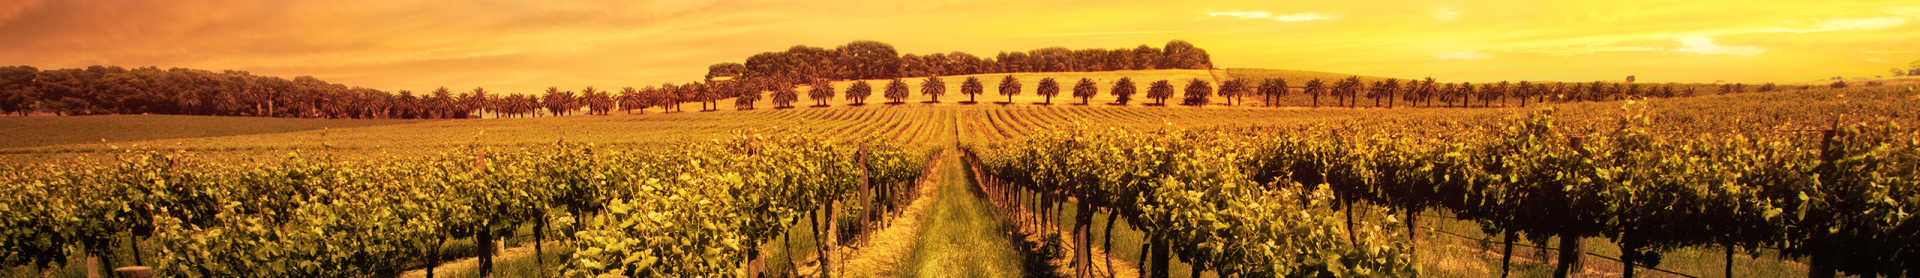 Image for Hunter Valley Wine New South Wales, Australia content section